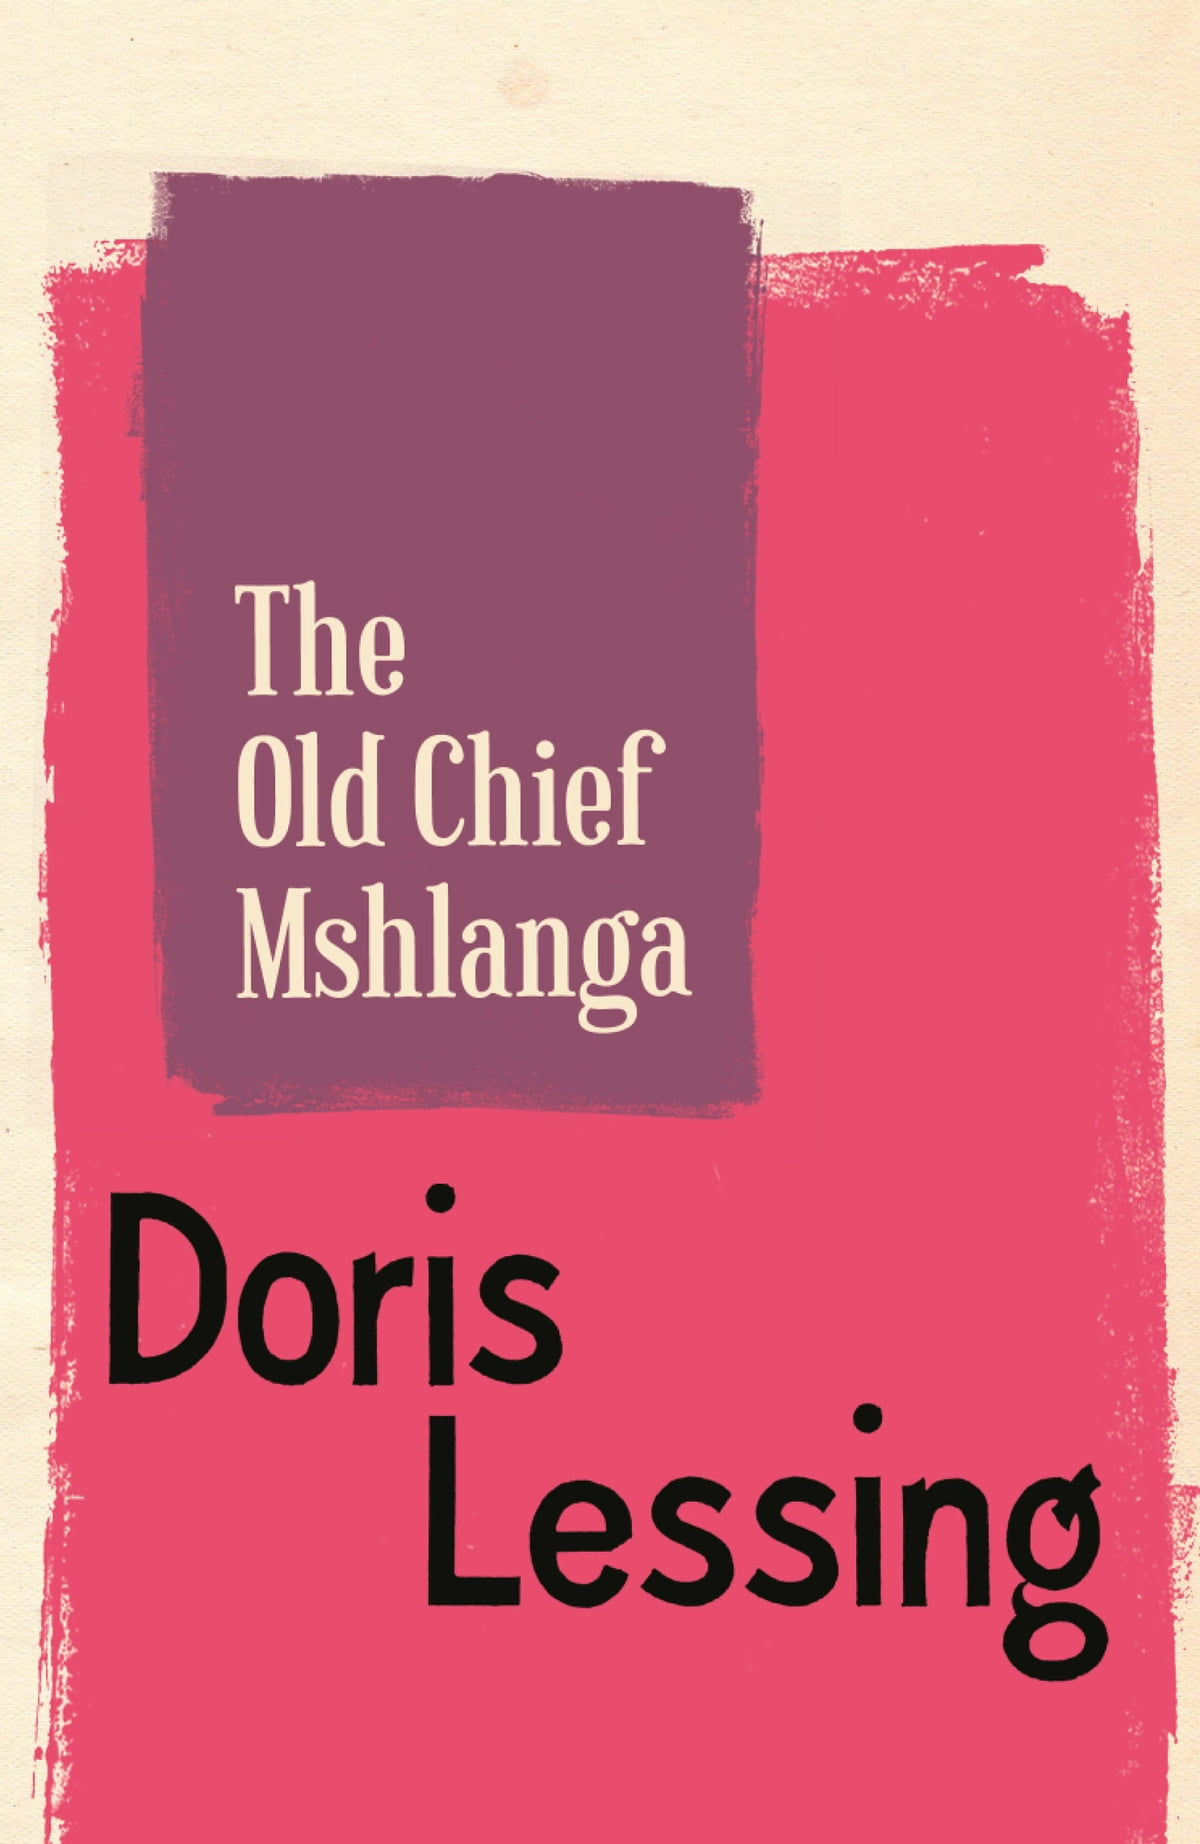 The old chief mshlanga ebook by doris lessing 9780007525737 the old chief mshlanga ebook by doris lessing 9780007525737 rakuten kobo fandeluxe Document